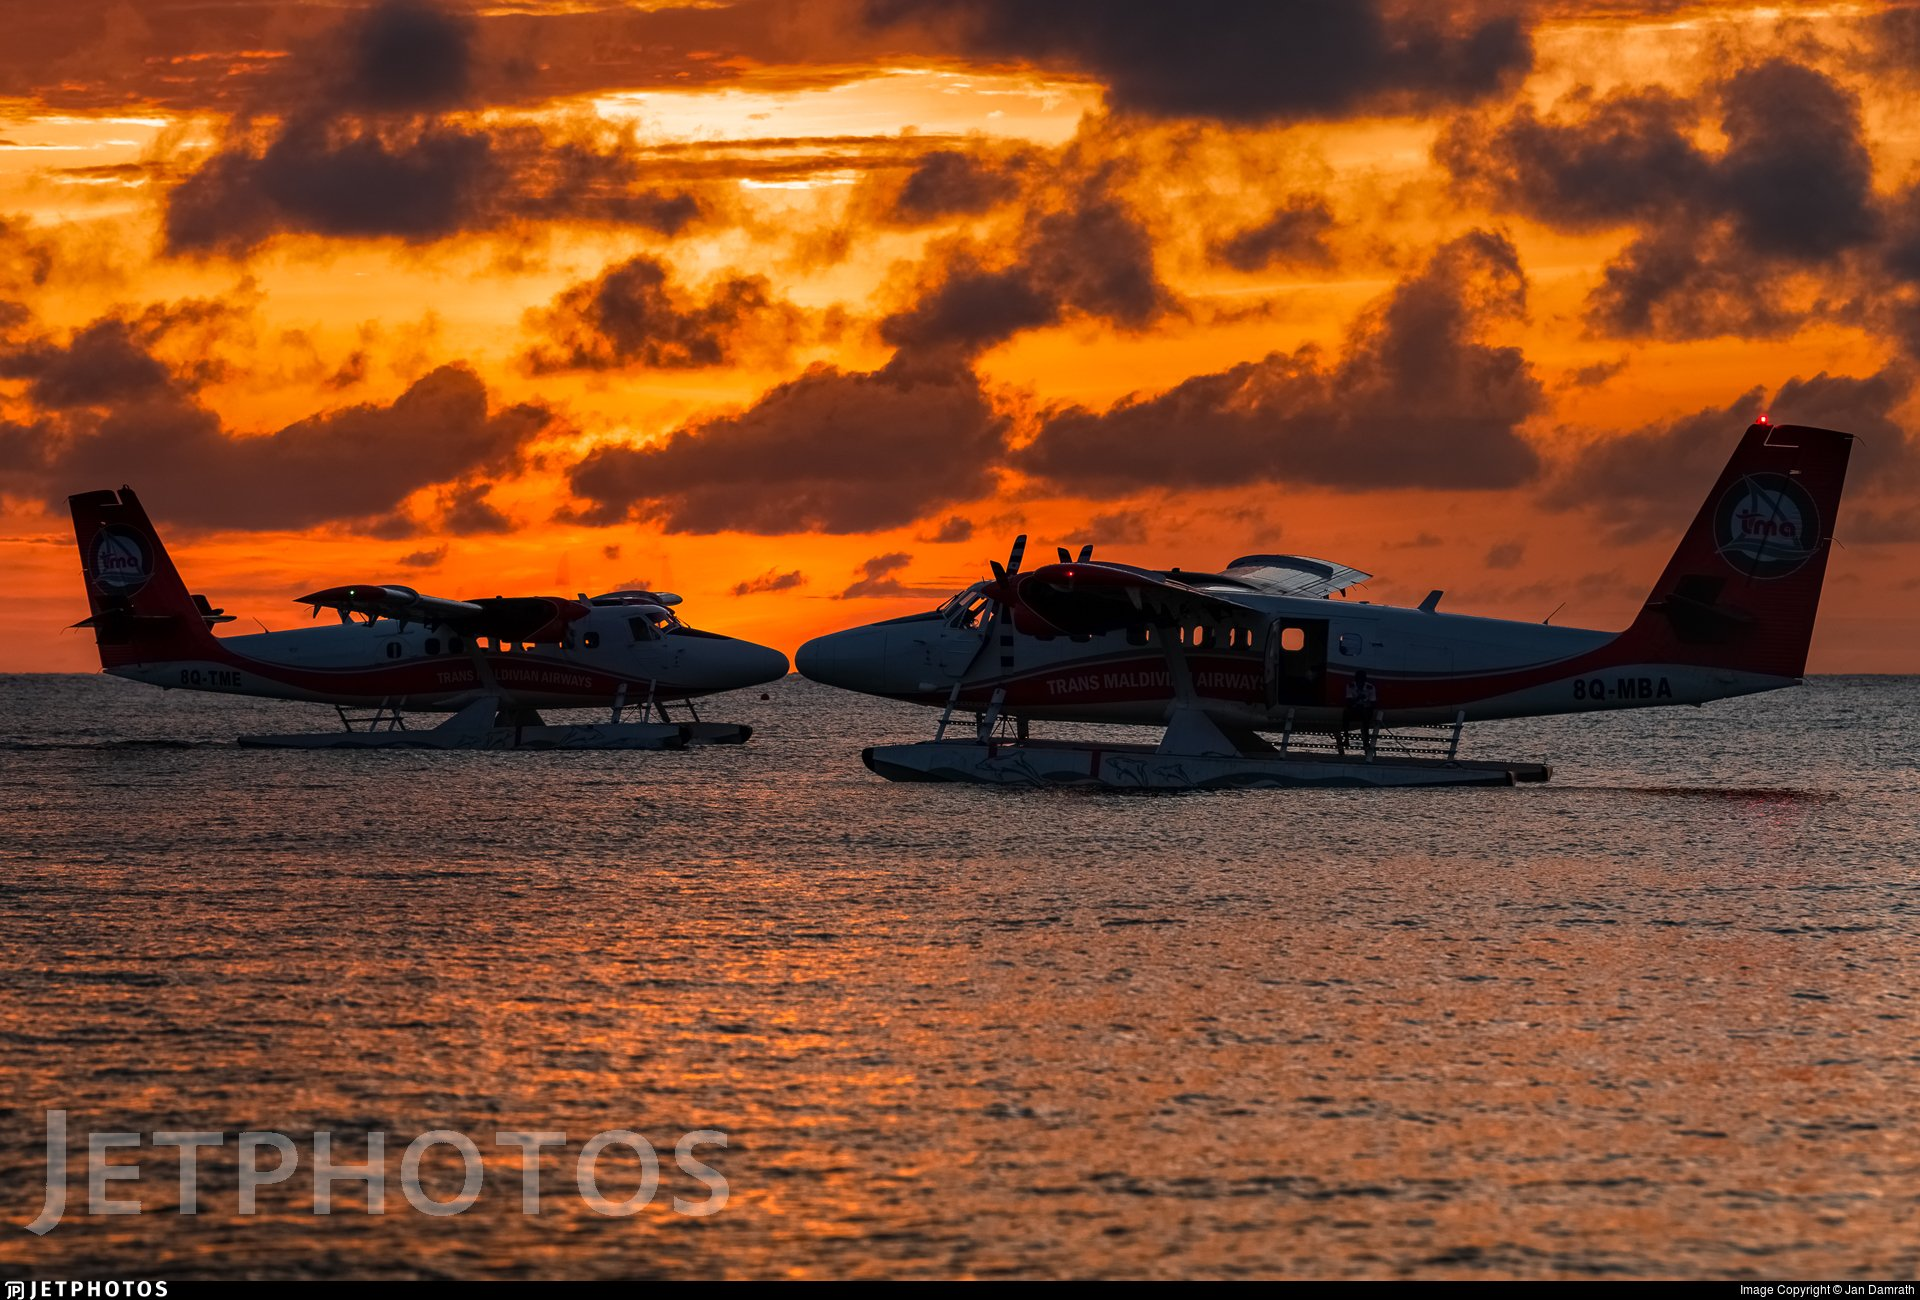 Two Trans Maldivian Airways Twin Otters enjoying a sunset in the Maldives. https://t.co/VRuuvDBewo © Jan Damrath https://t.co/7HGcxbmo5q